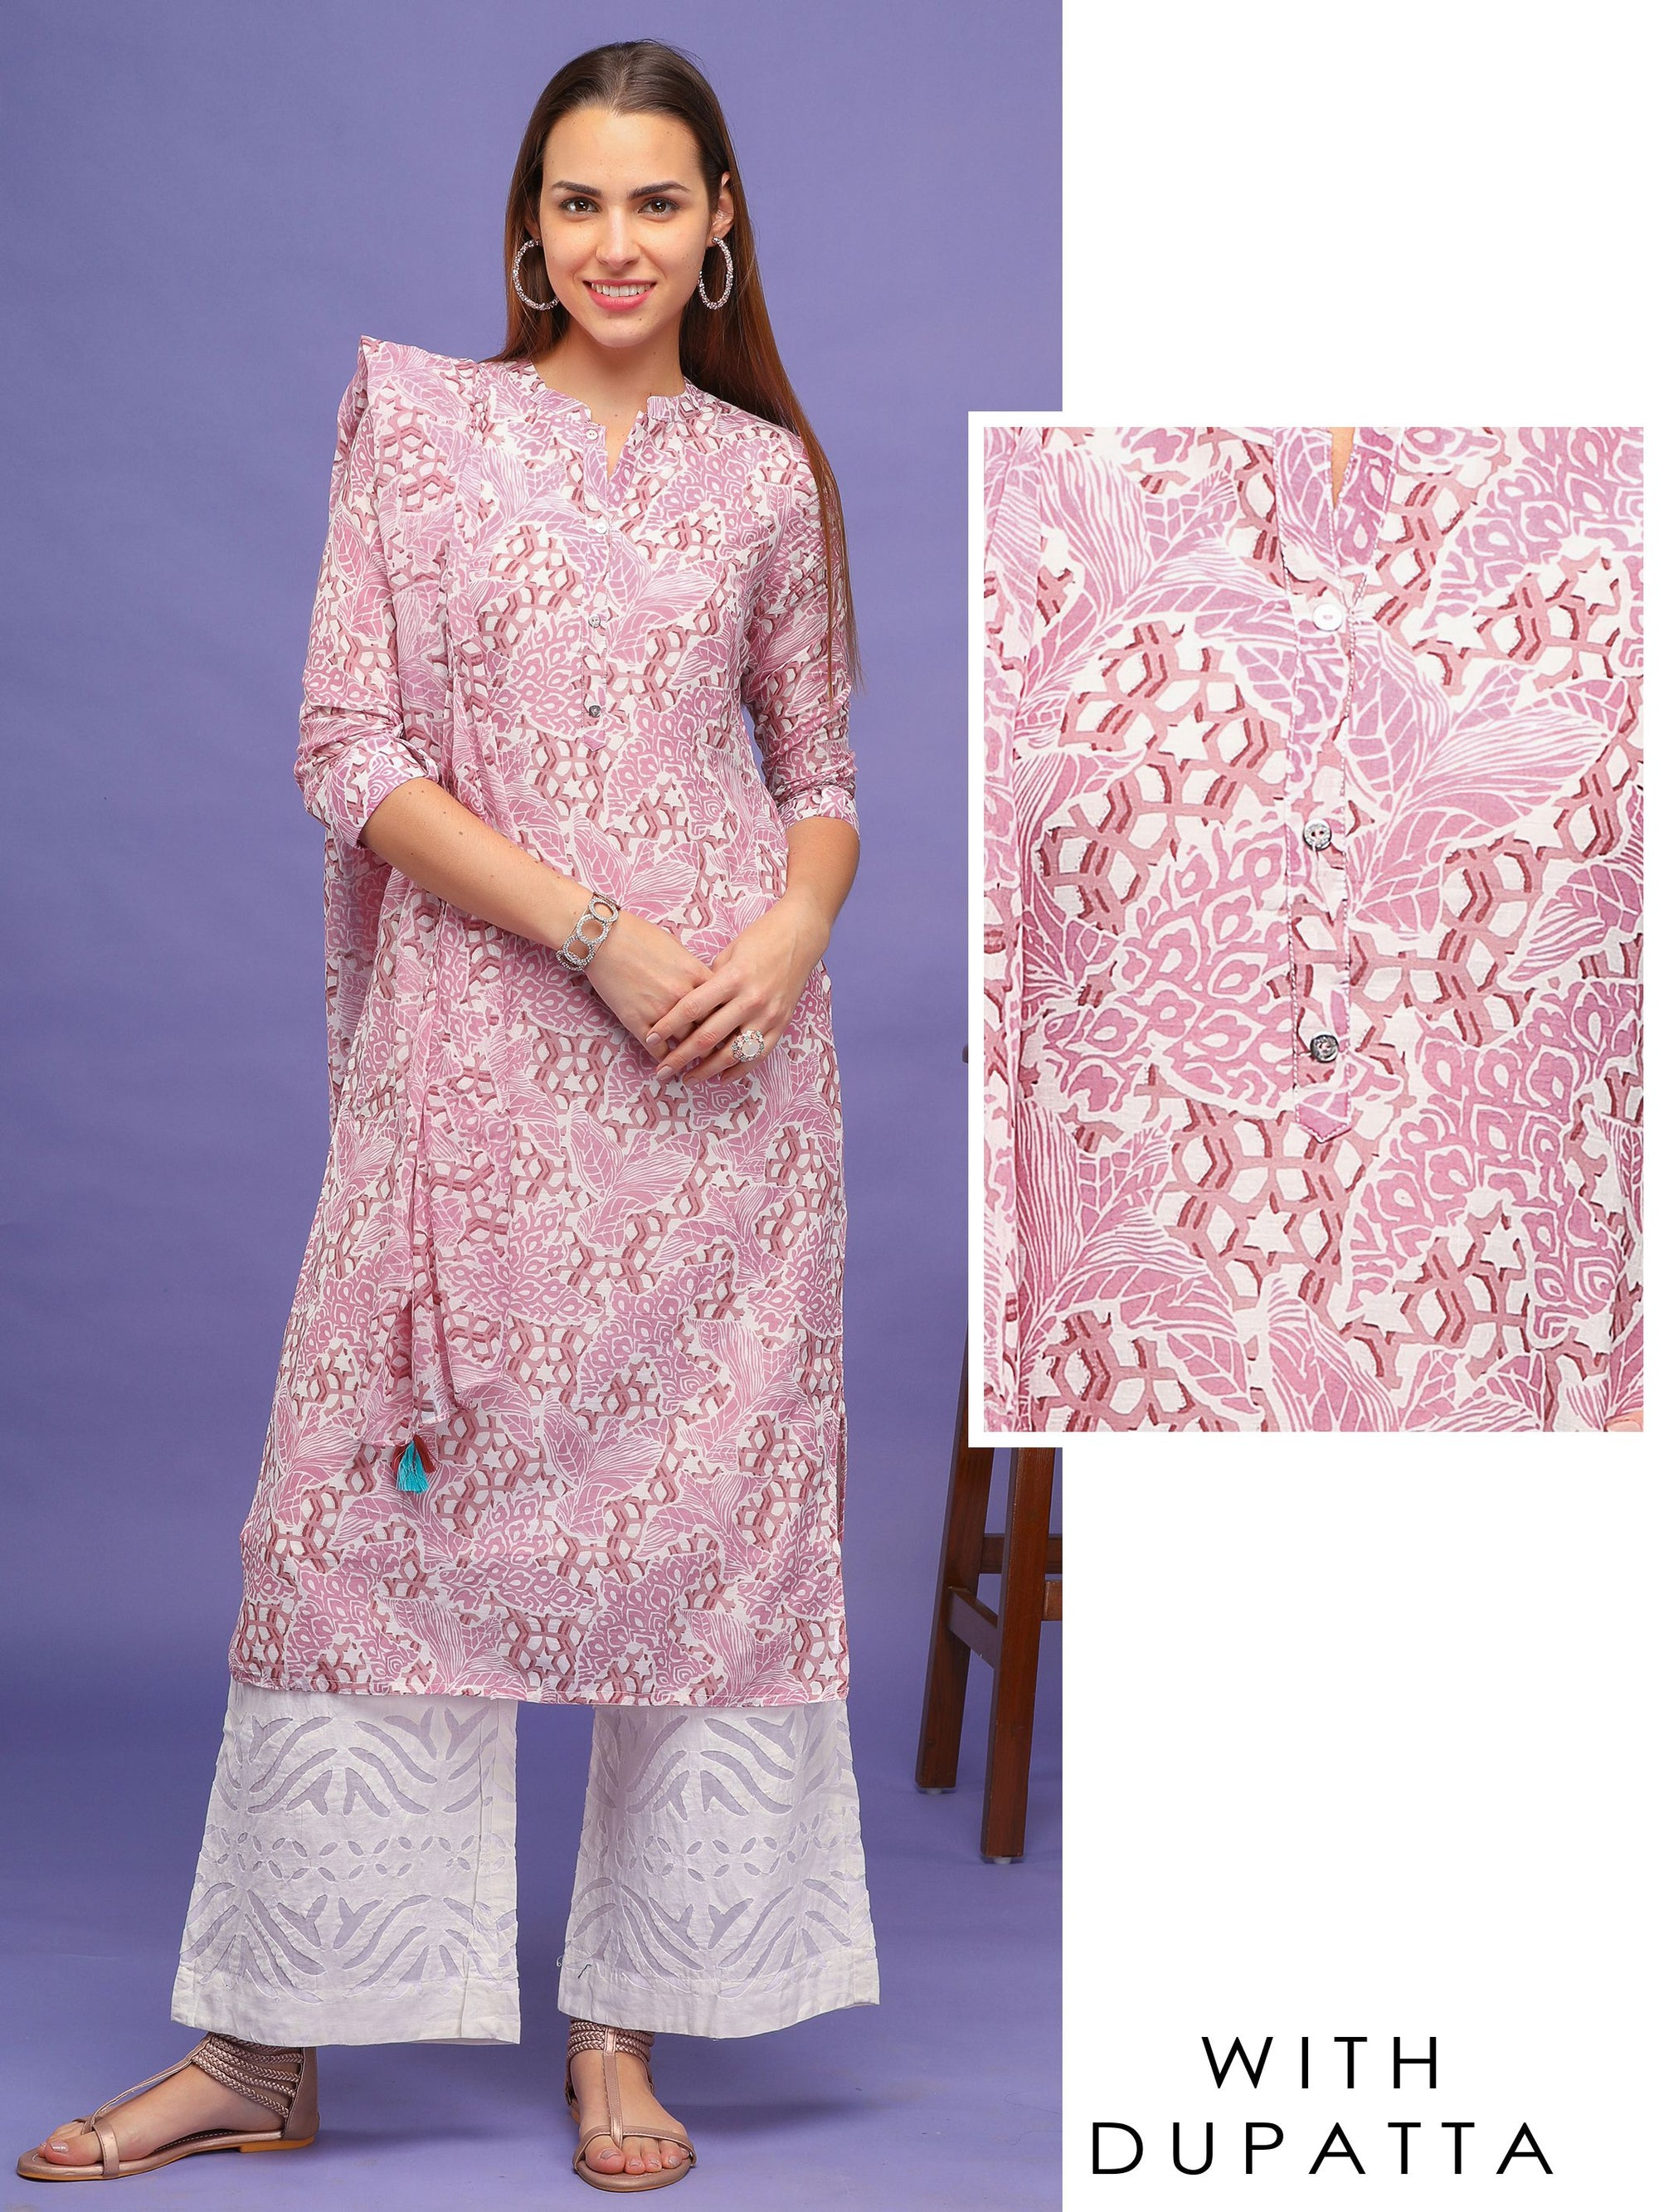 All over Print Kurti with Dupatta – Pink